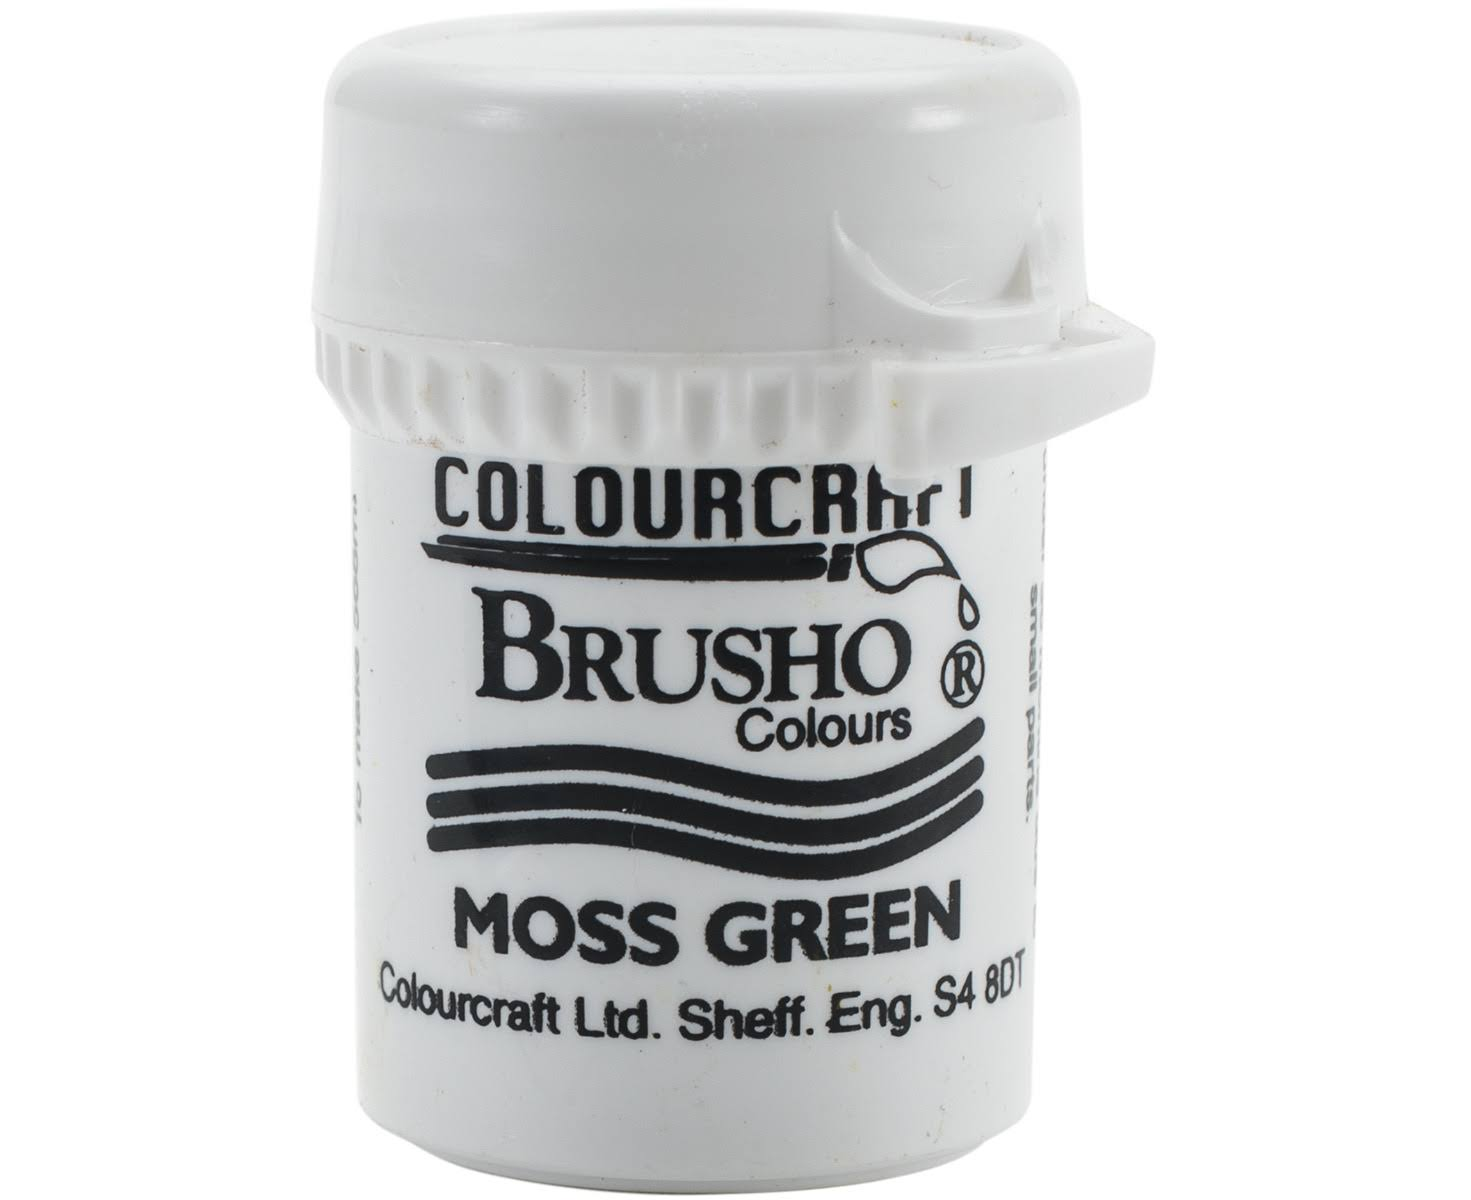 Colourcraft Brusho Crystal Colour - Moss Green, 15g